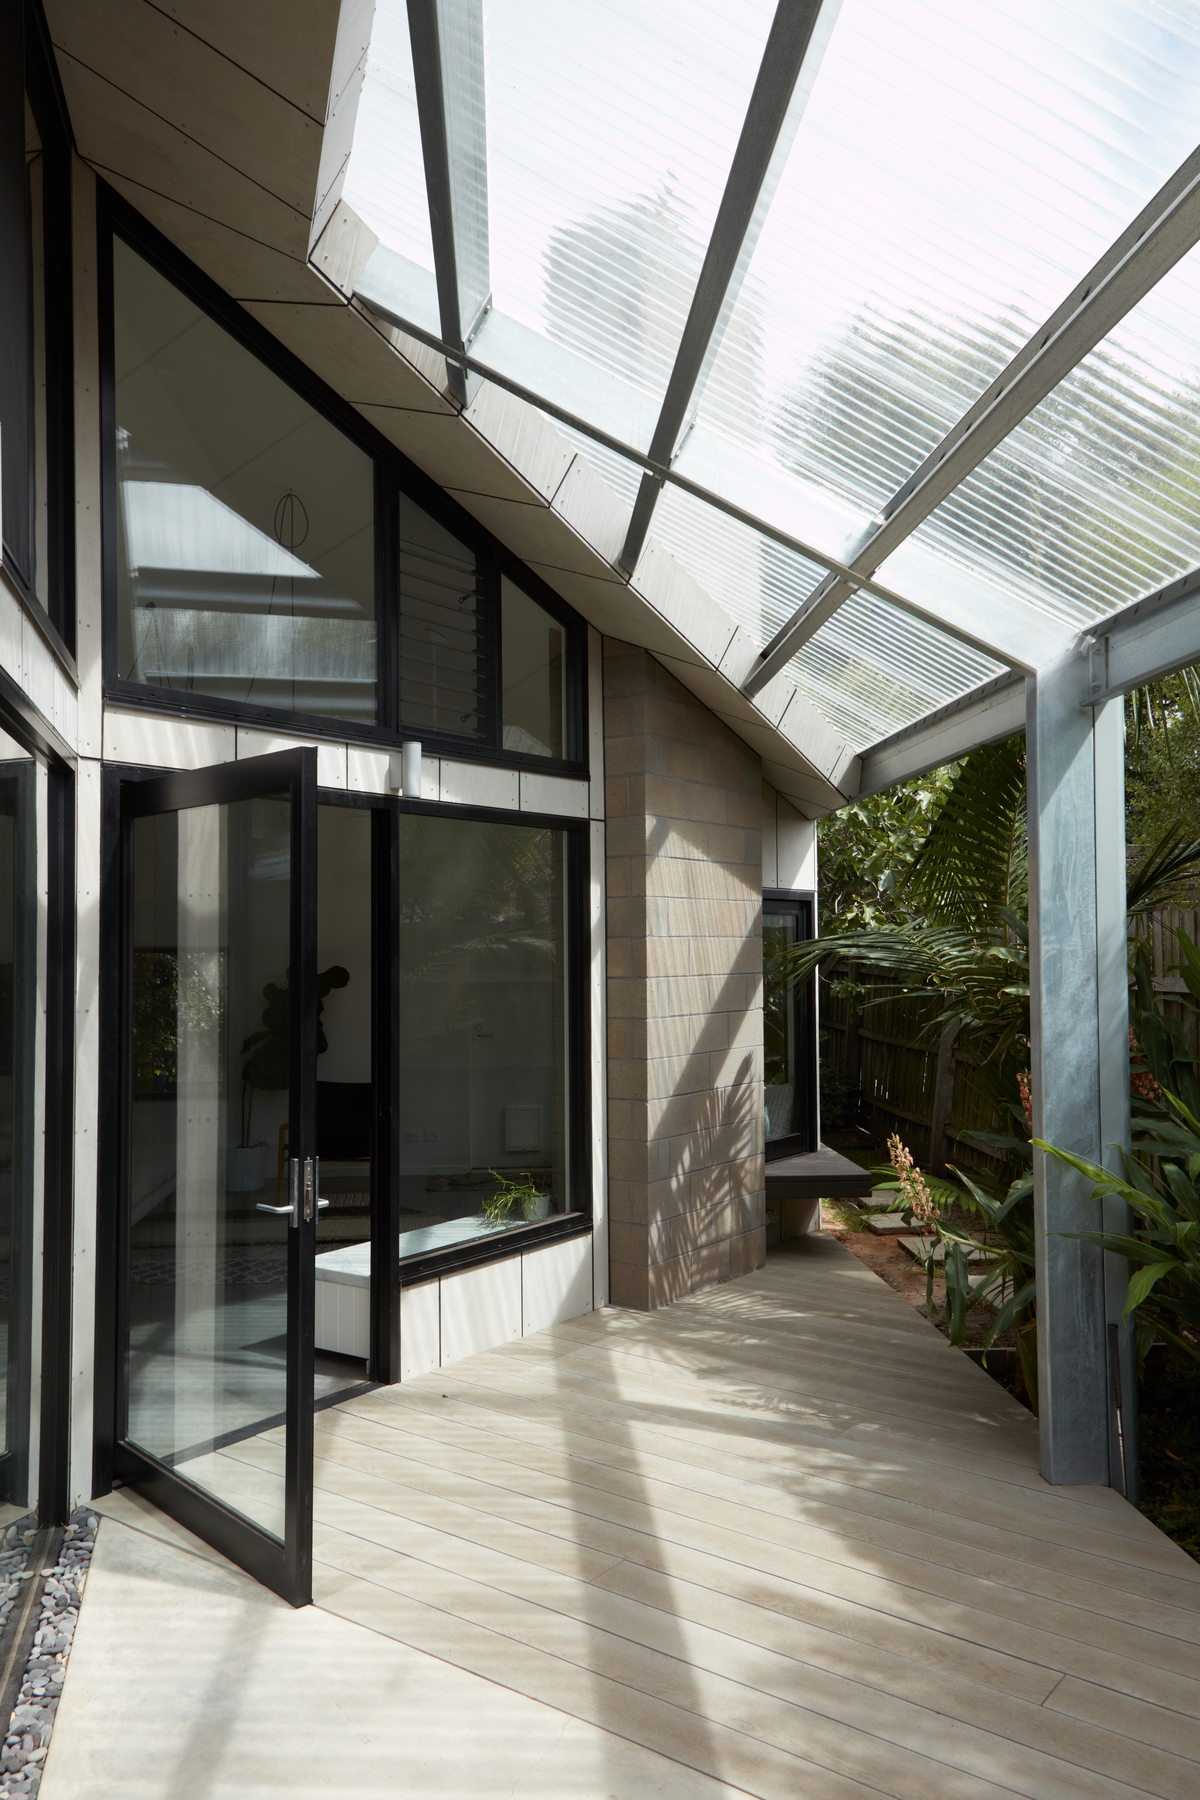 The Conventional Form of this Addition is Cut Back to Let the Sun In